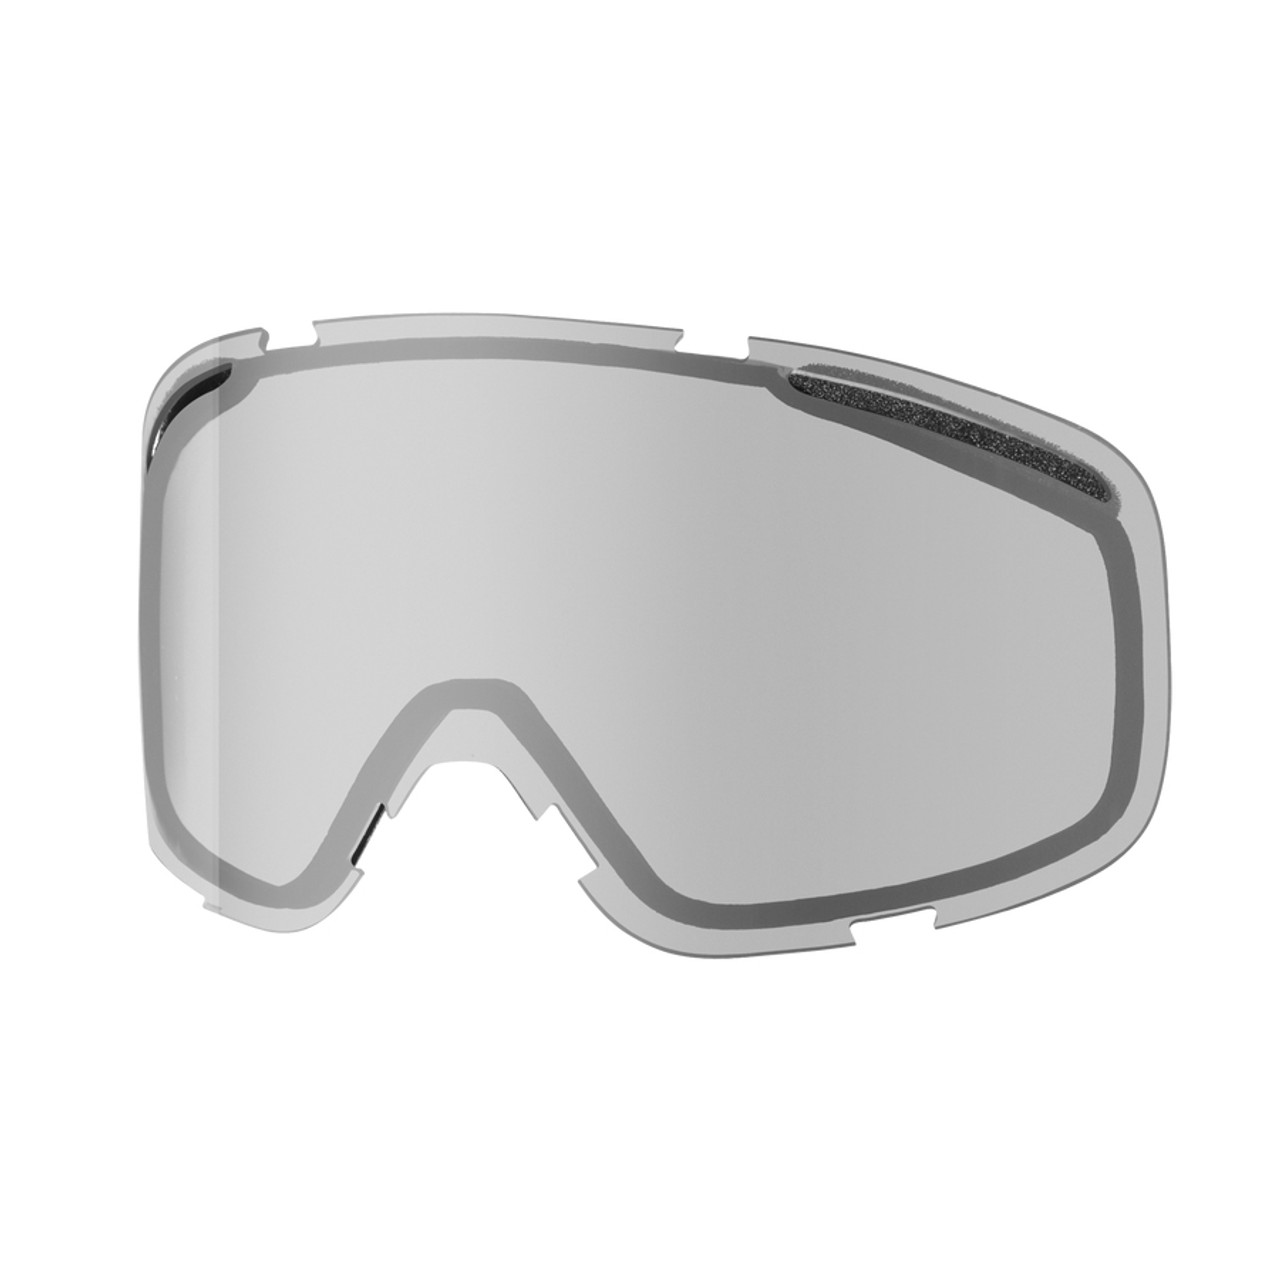 Clear - Smith Vogue Replacement Lenses